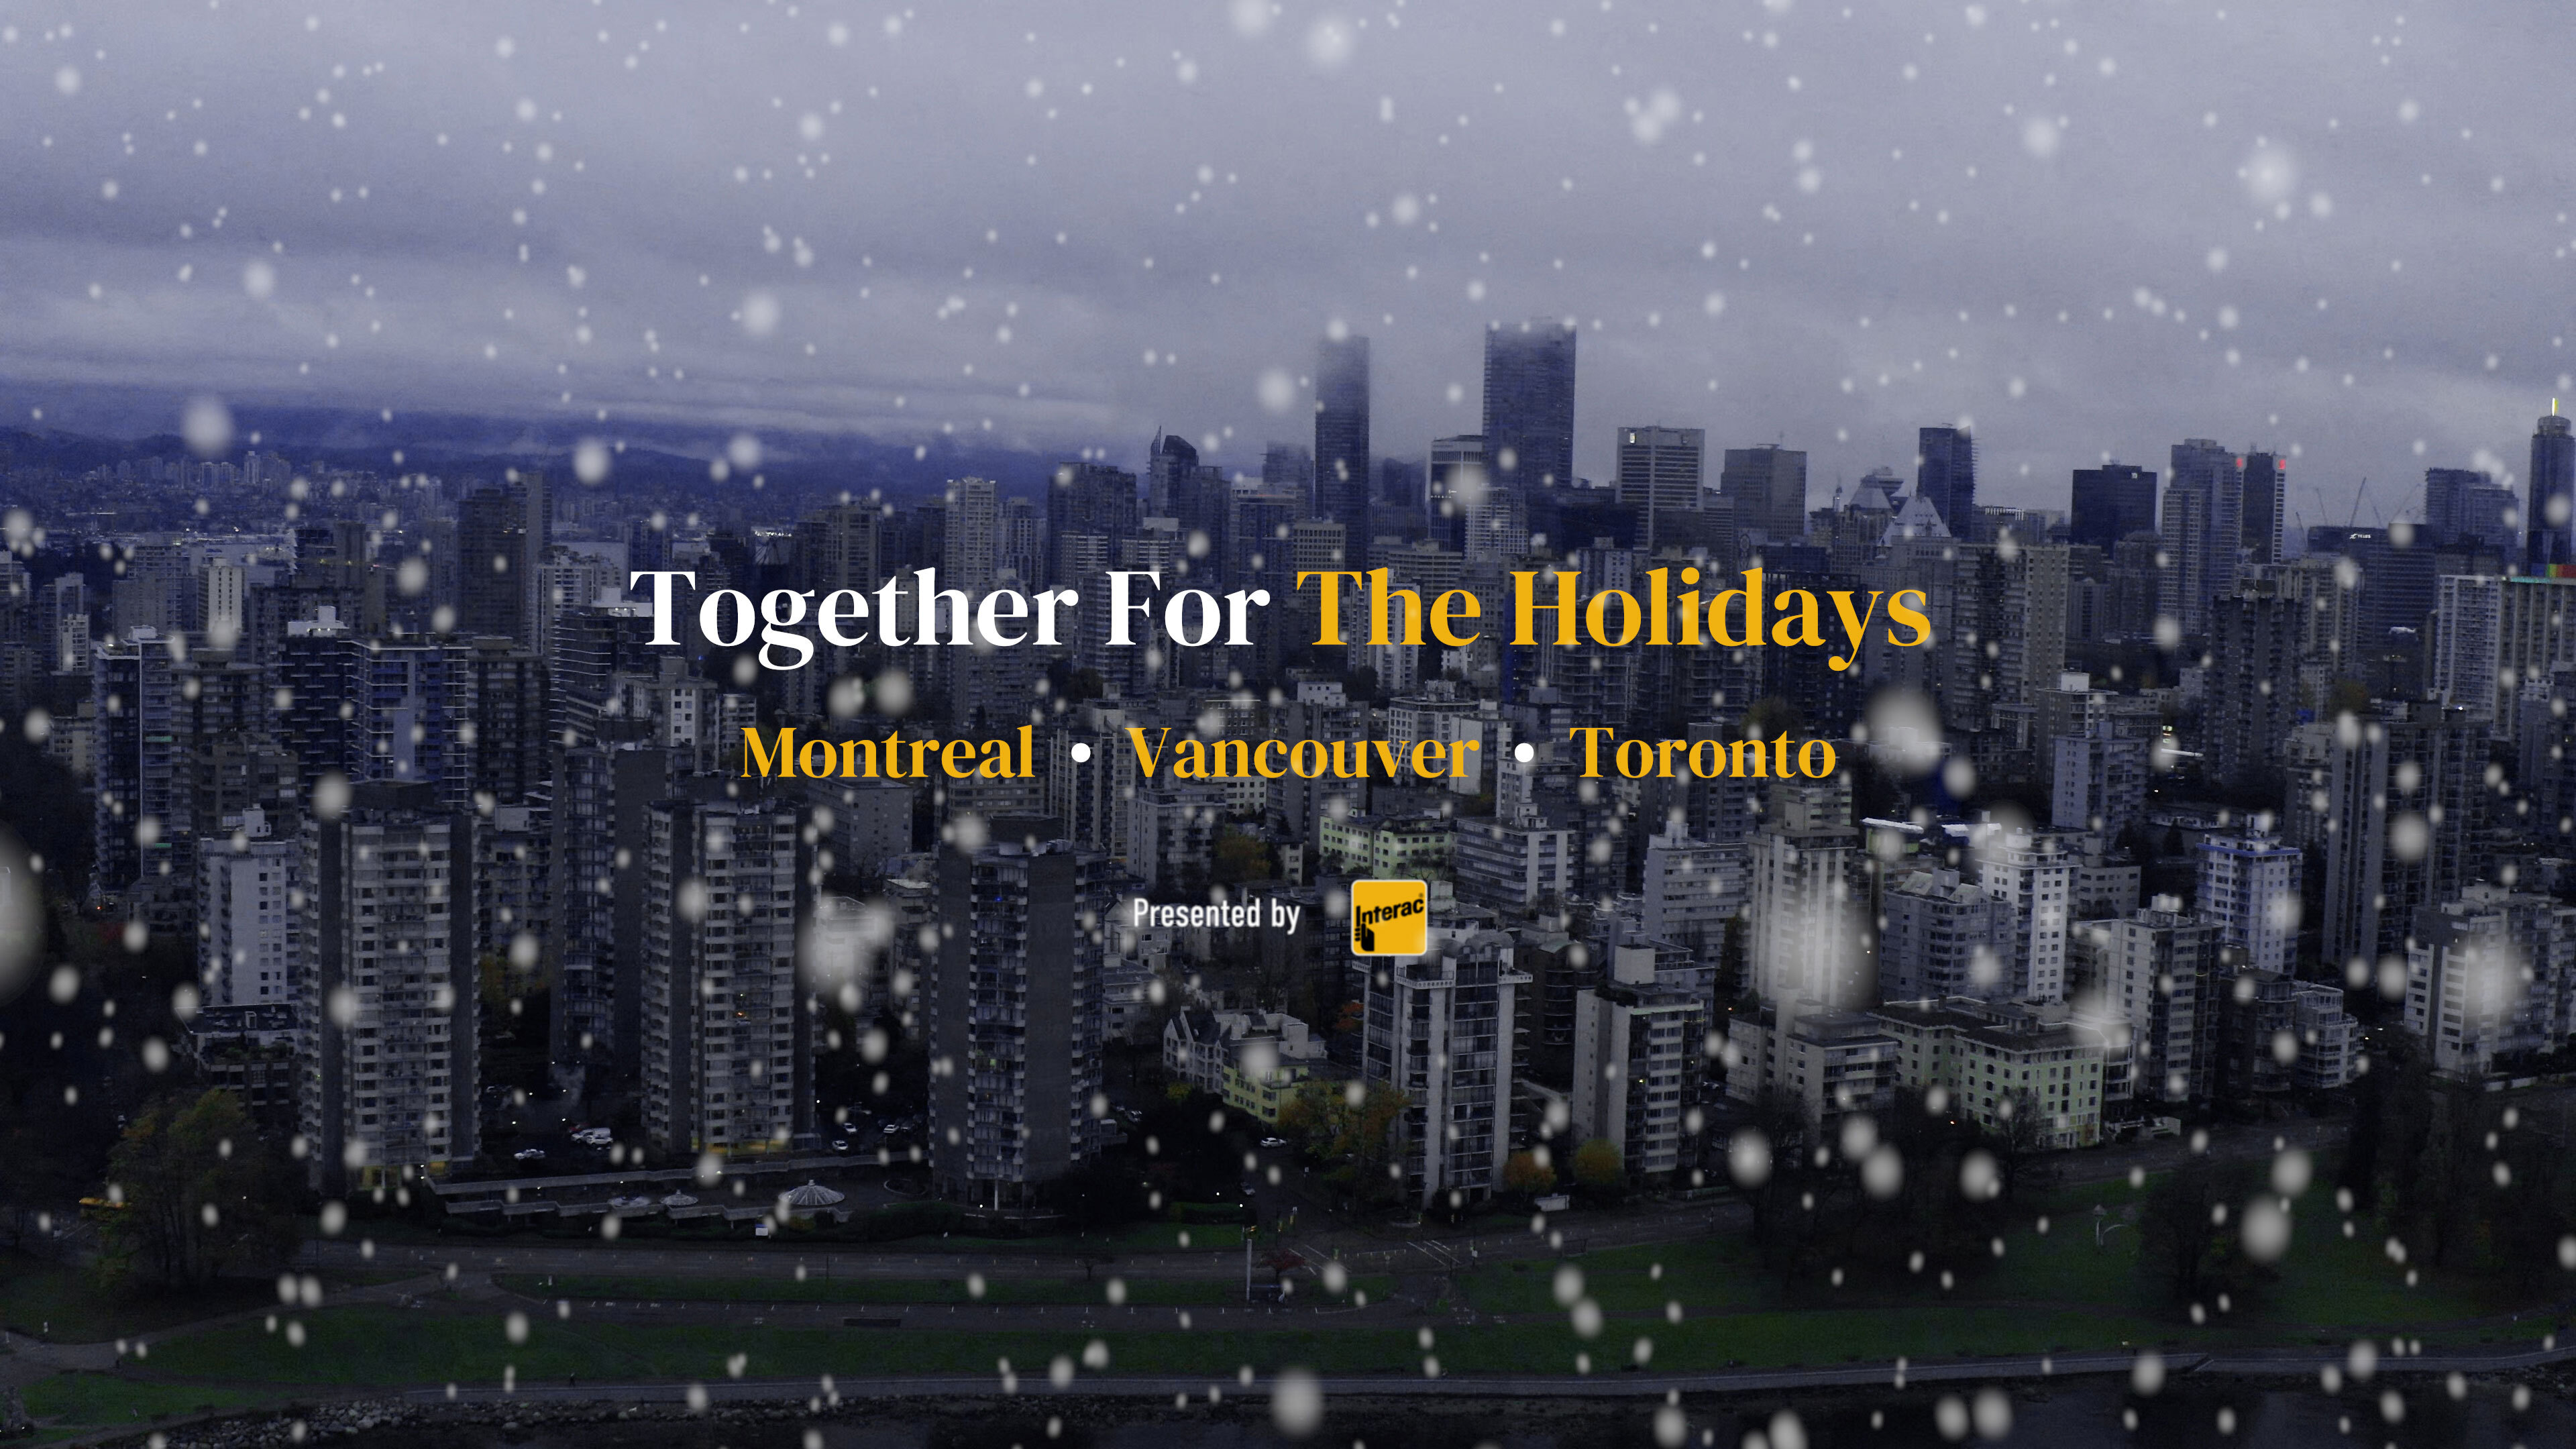 Narcity Media & Interac Partner To Encourage Shopping Local This Holiday Season With The 'Together For The Holidays' Campaign